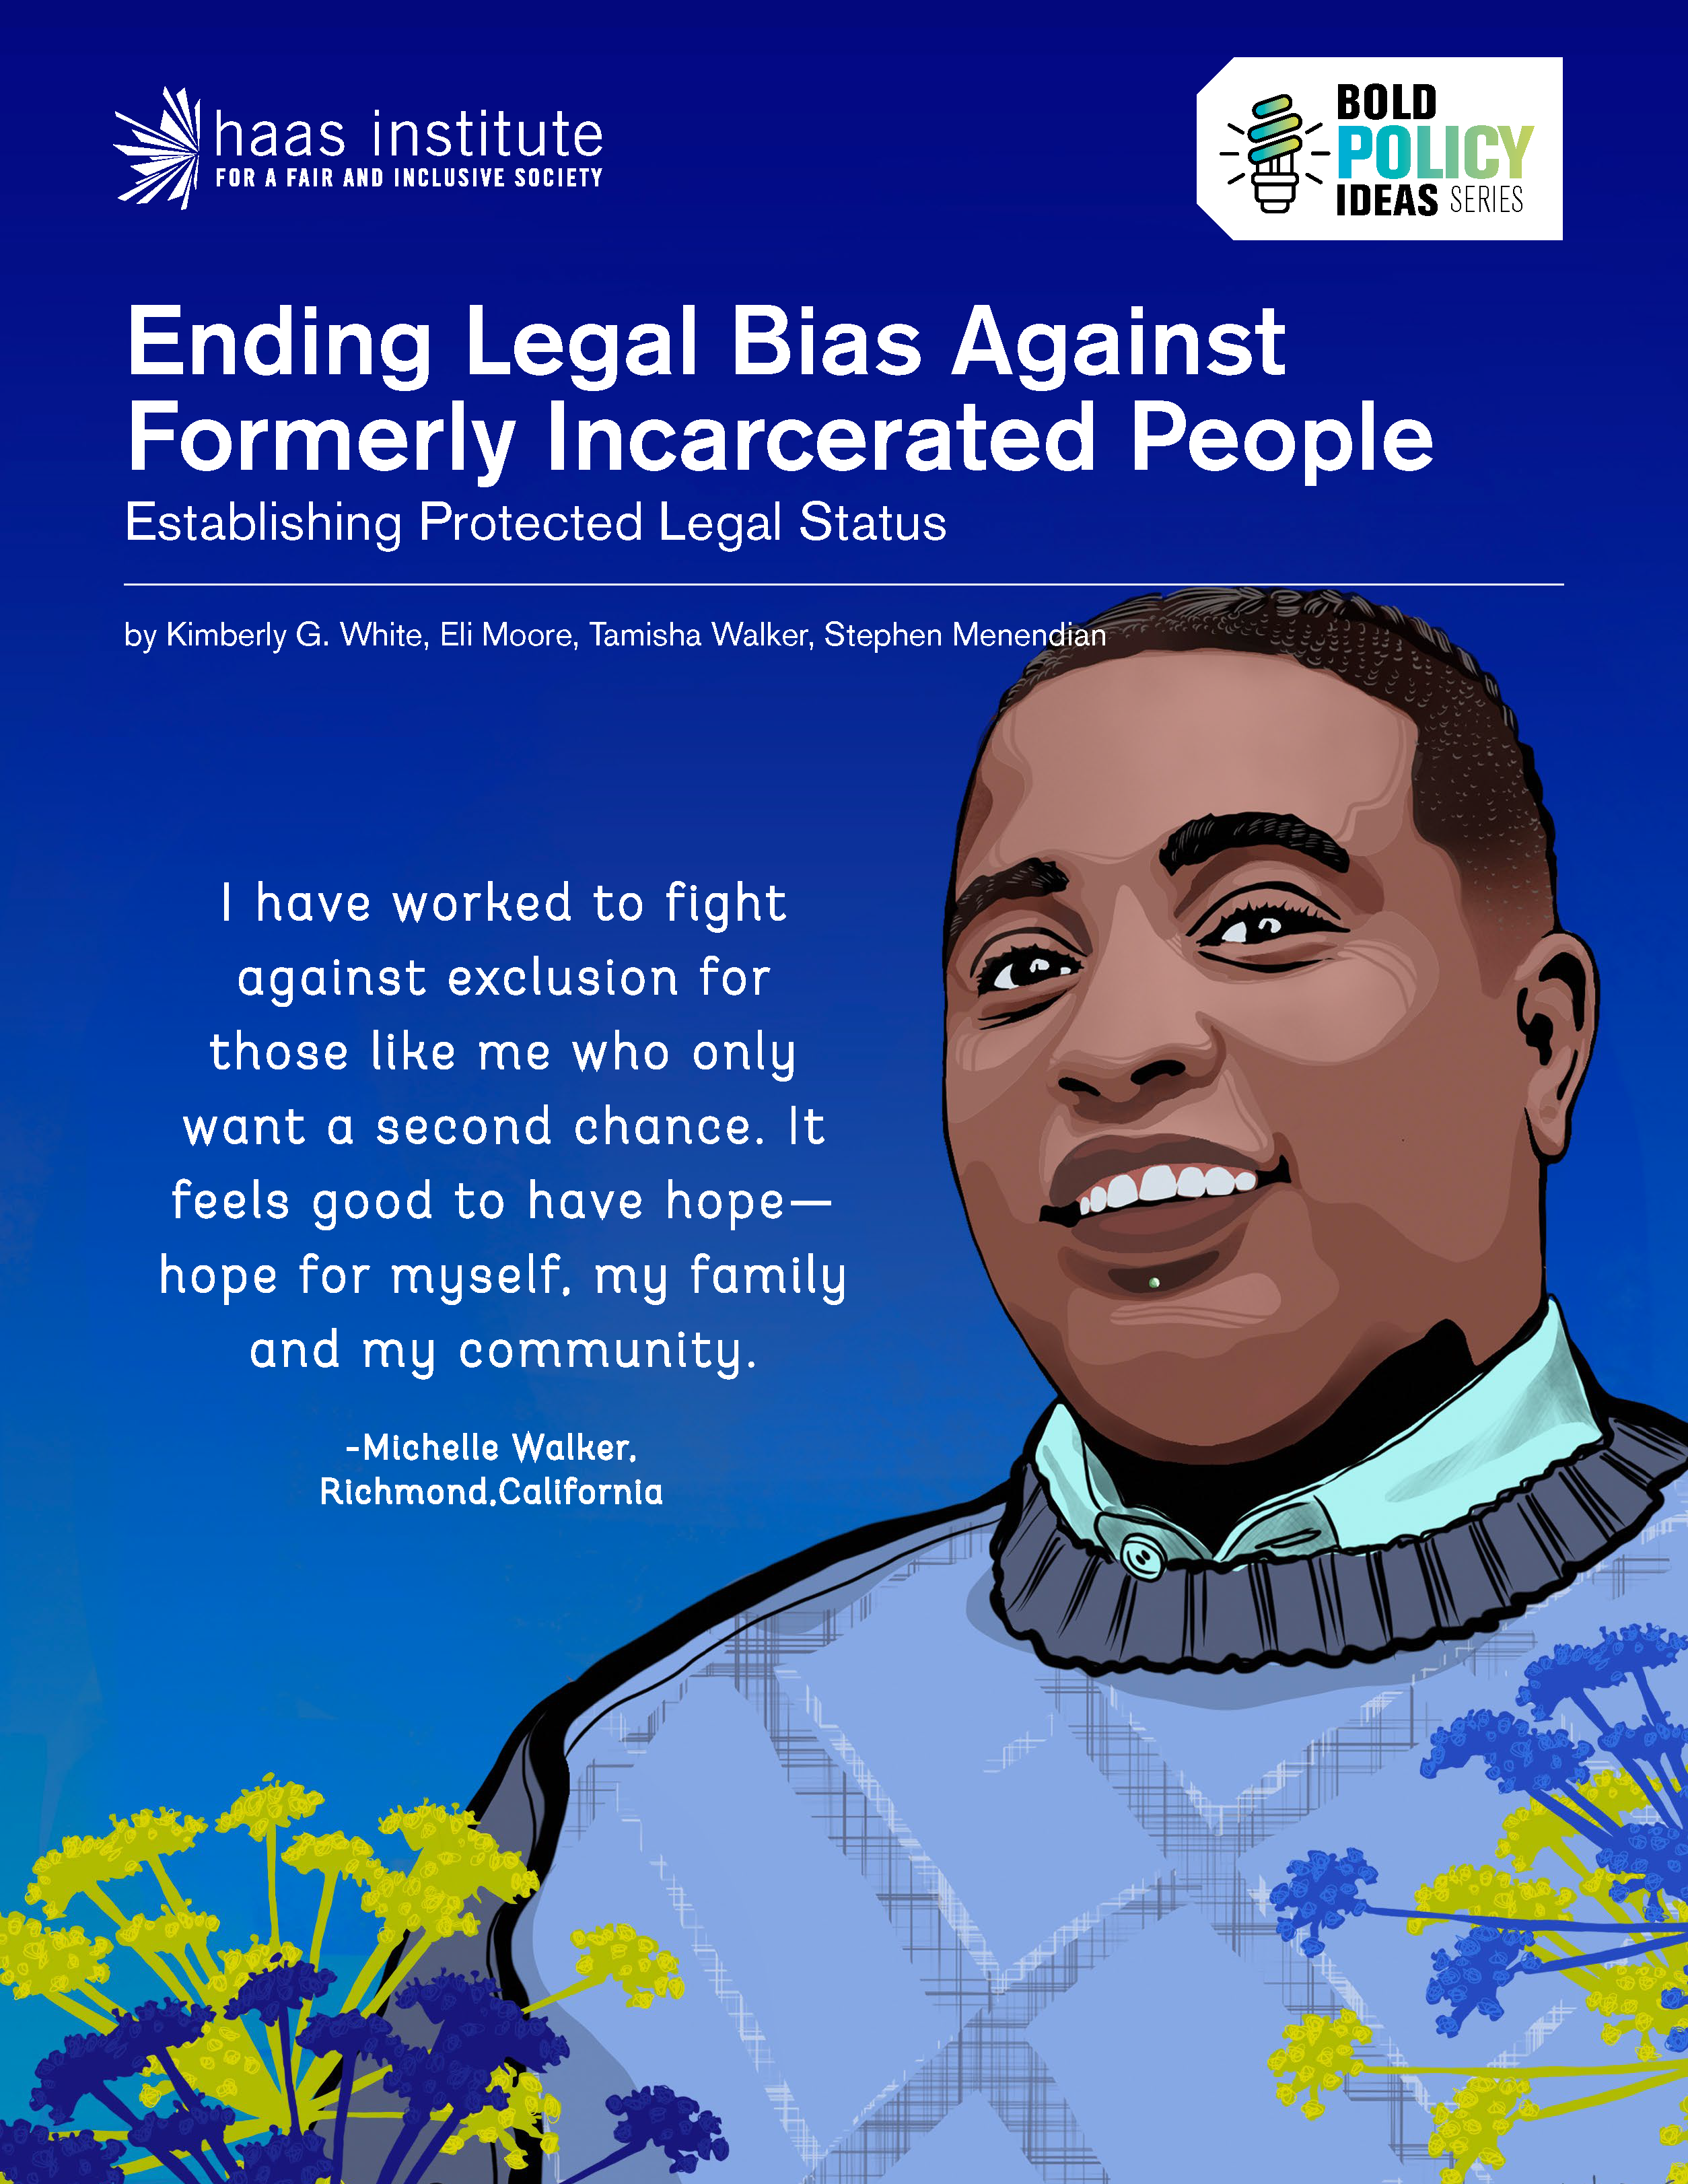 Ending Legal Bias Against Formerly Incarcerated People cover image shows an illustration of a young black man smiling